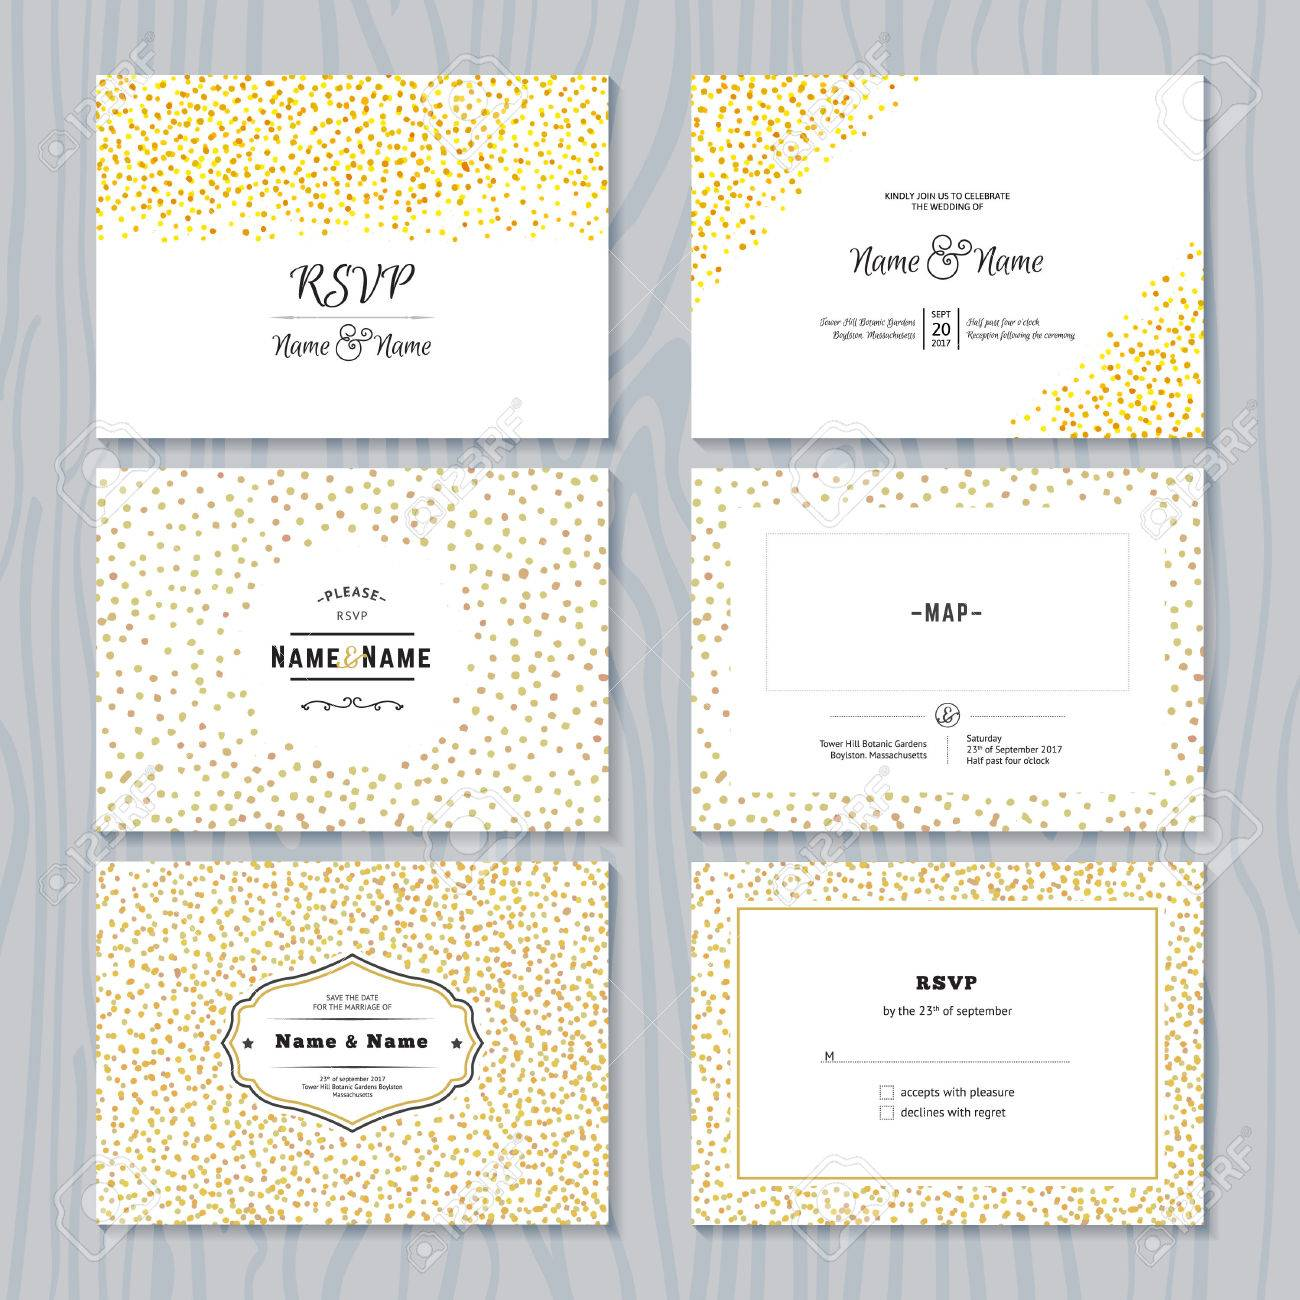 Rsvp Cards Set With Gold Confetti Borders Vector Wedding